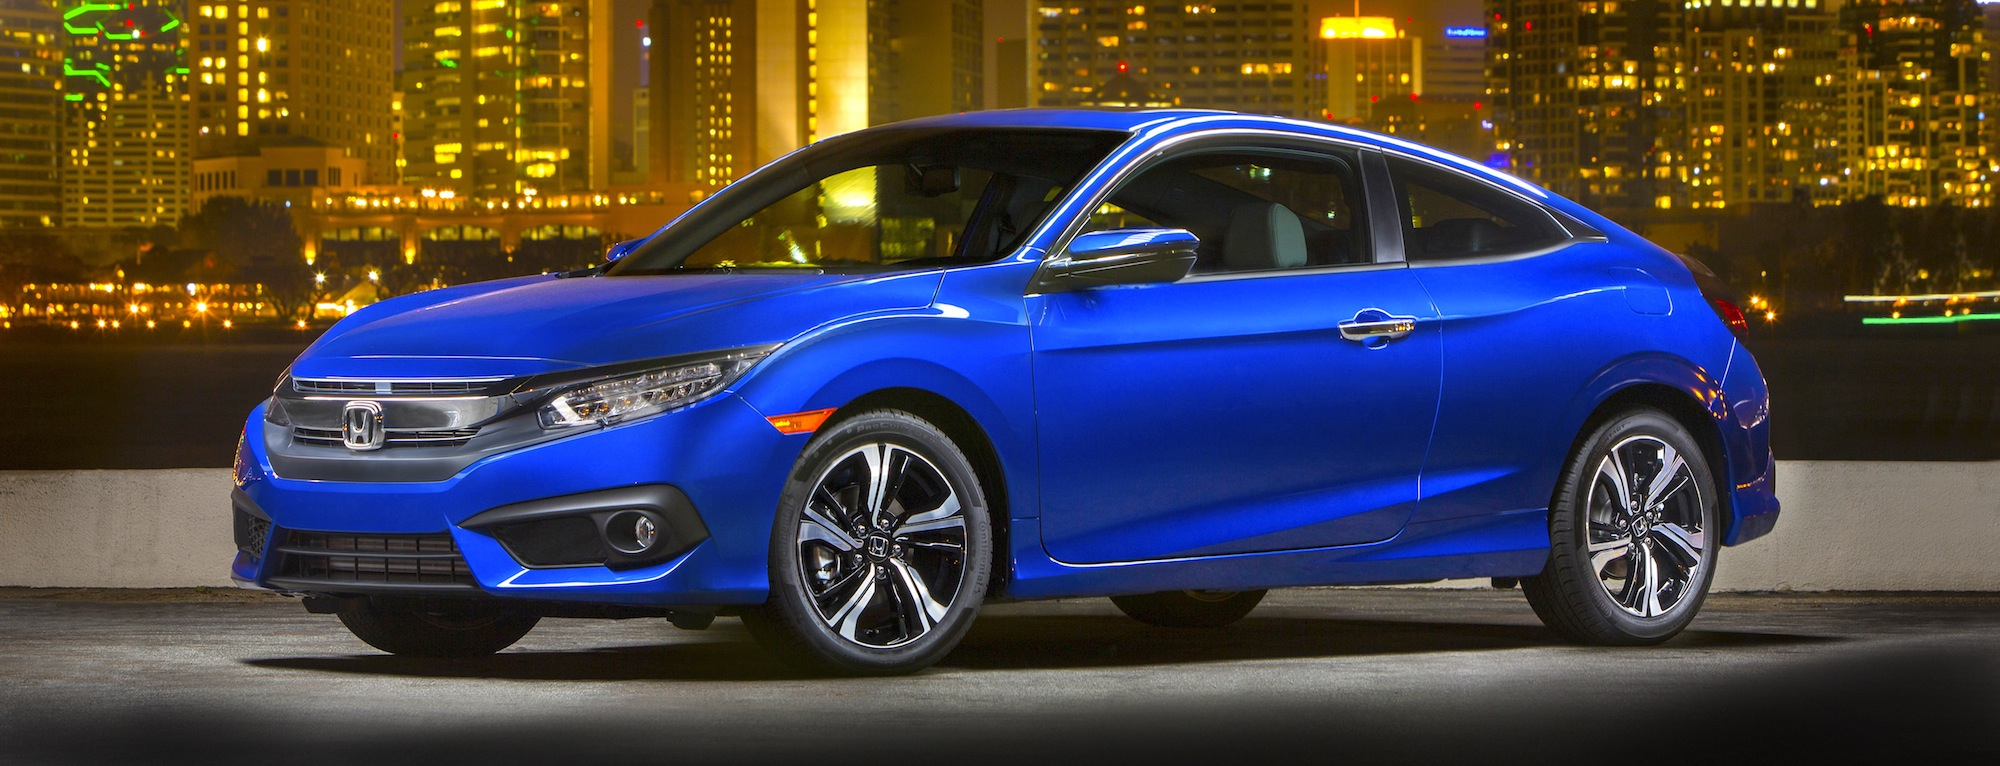 5 Of The Best Car Lease Specials For June